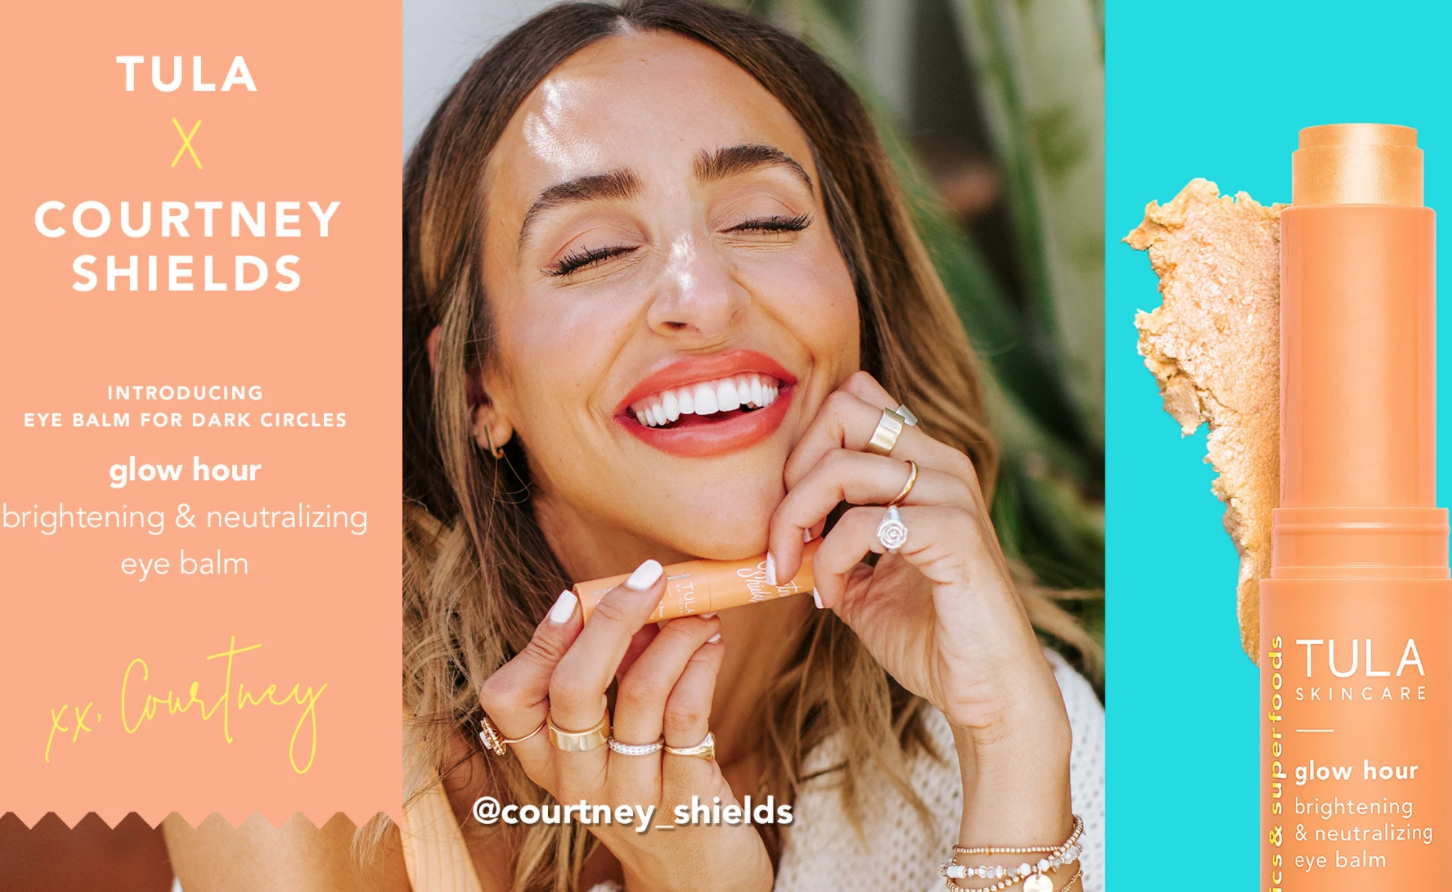 Advertisement for the TULA x Courtney Shields Glow Hour collaboration.